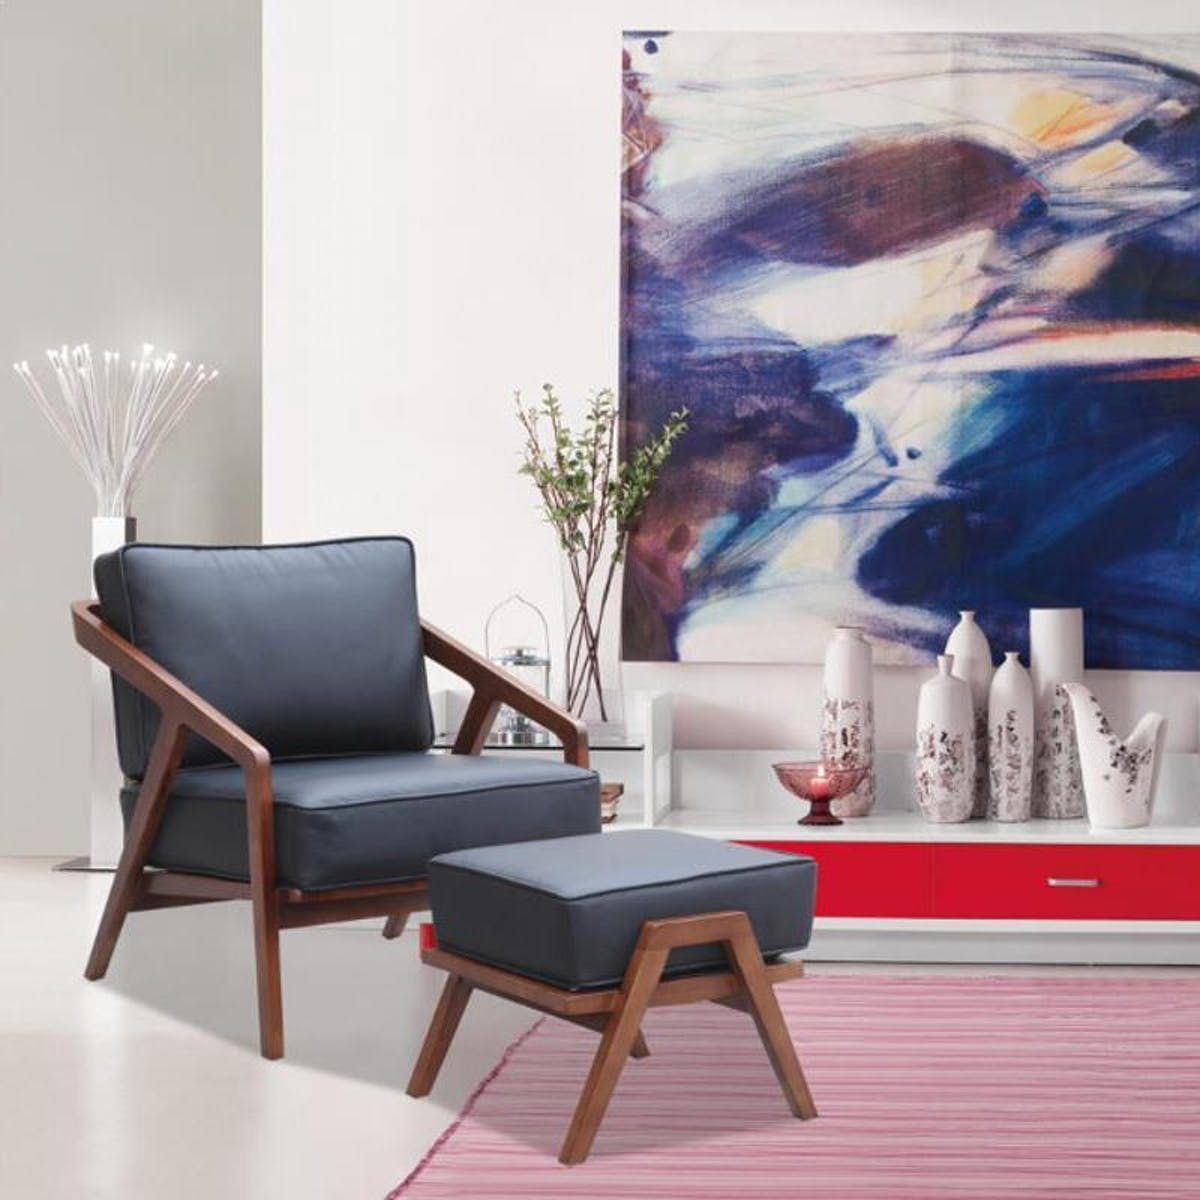 Pleasant Inspot Lounge Chair And Ottoman Gray Caraccident5 Cool Chair Designs And Ideas Caraccident5Info